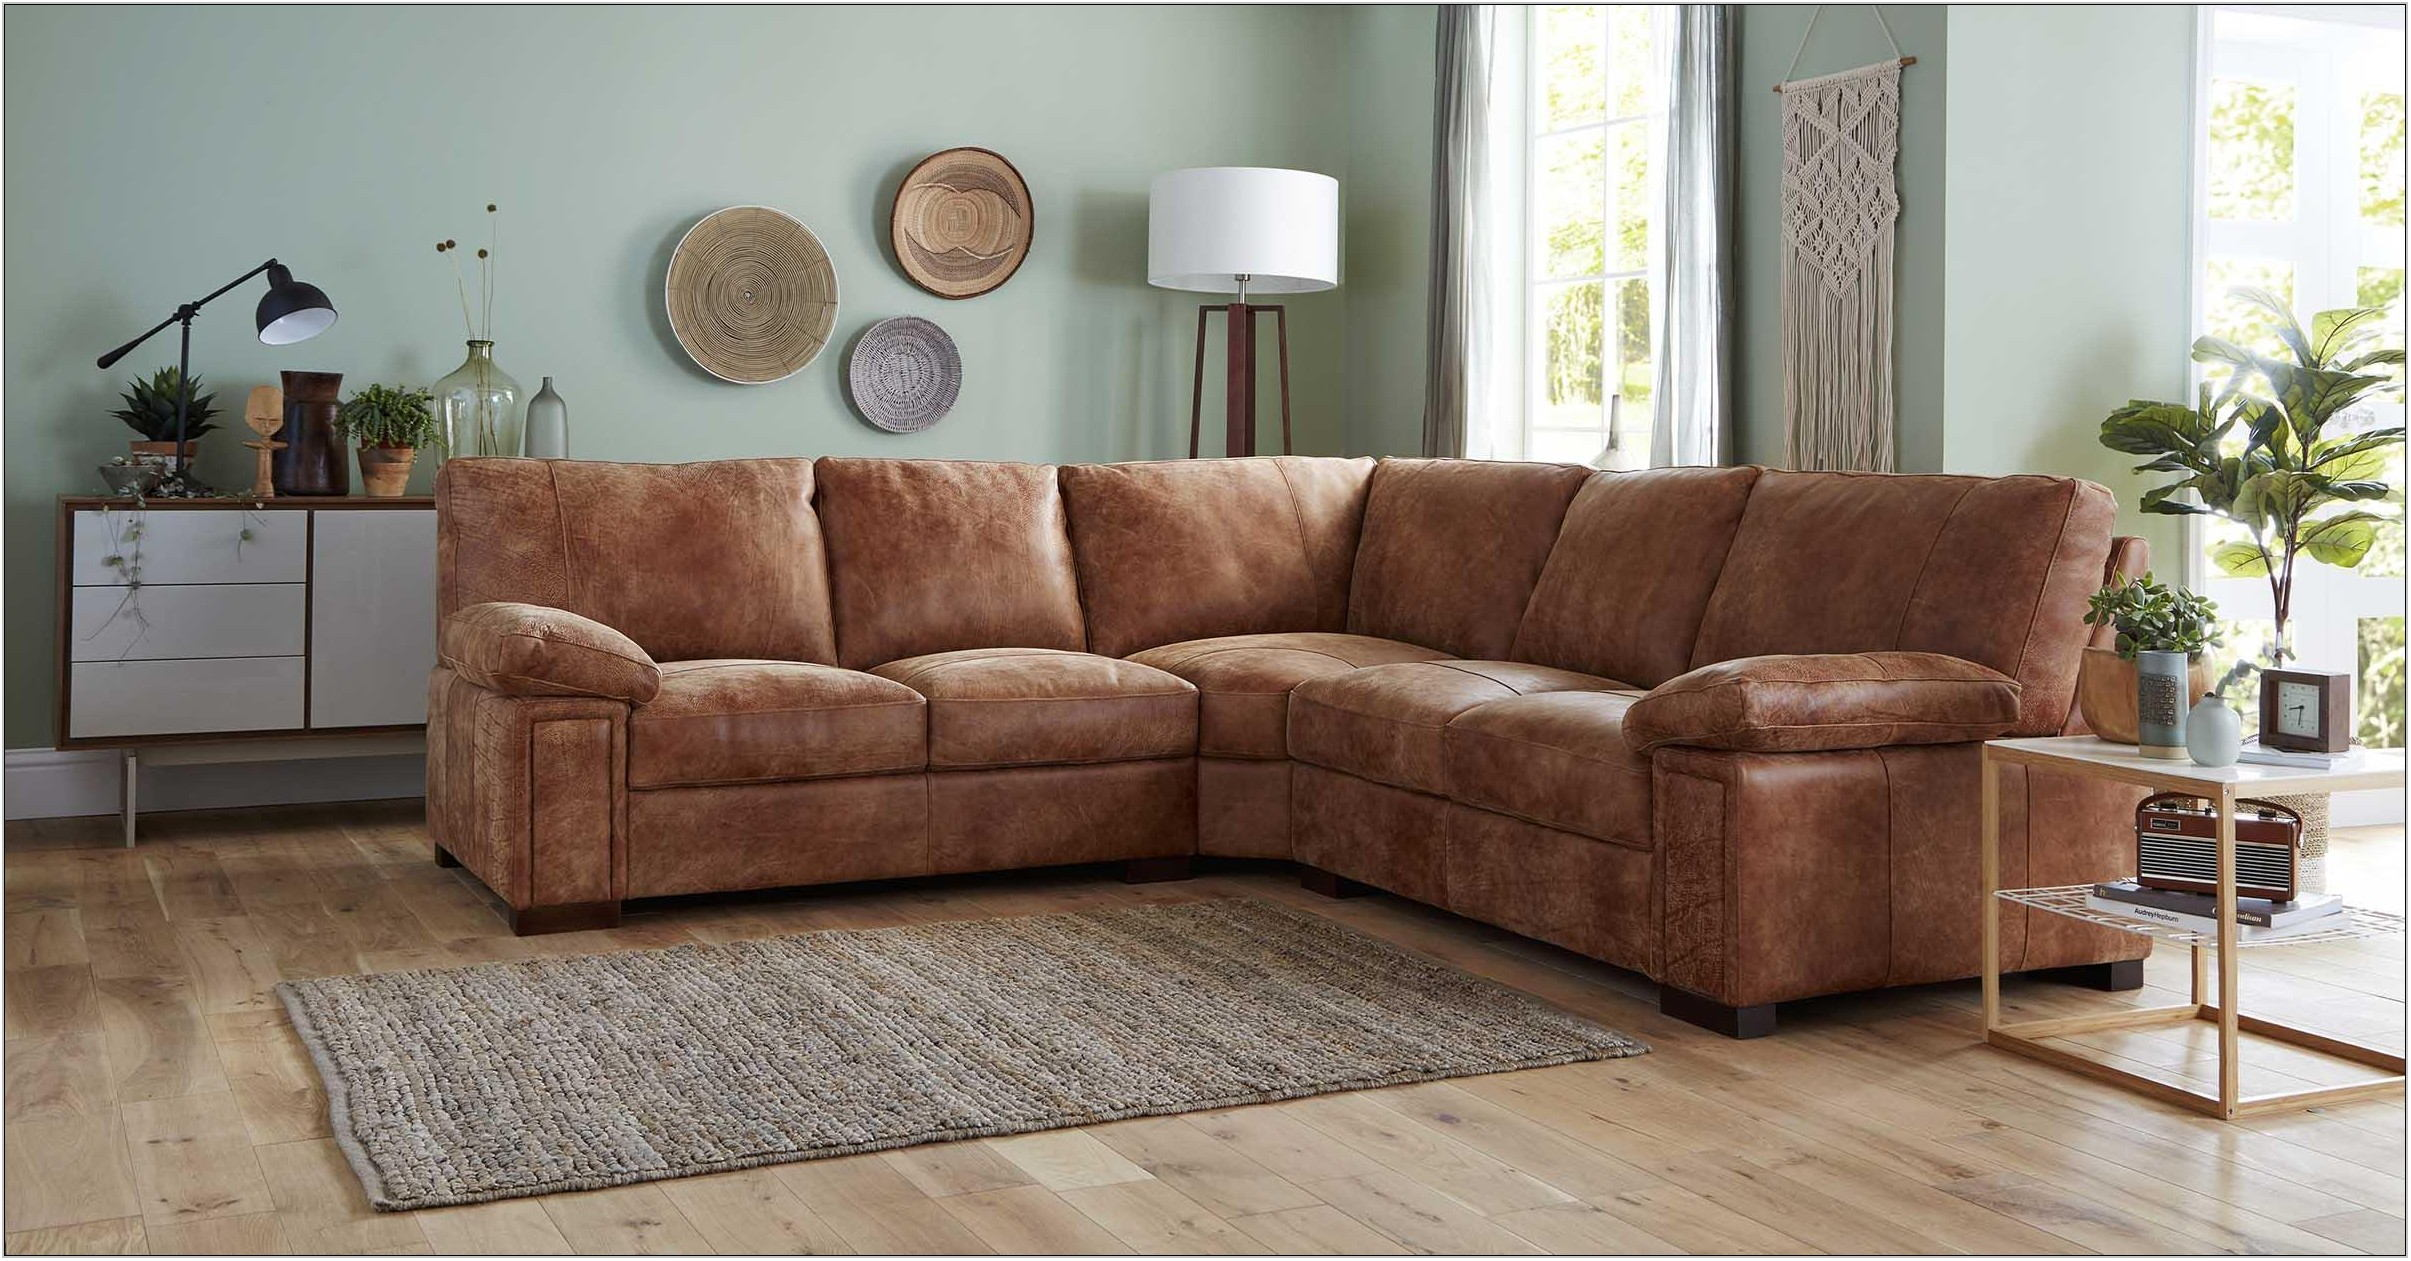 Couches For The Living Room